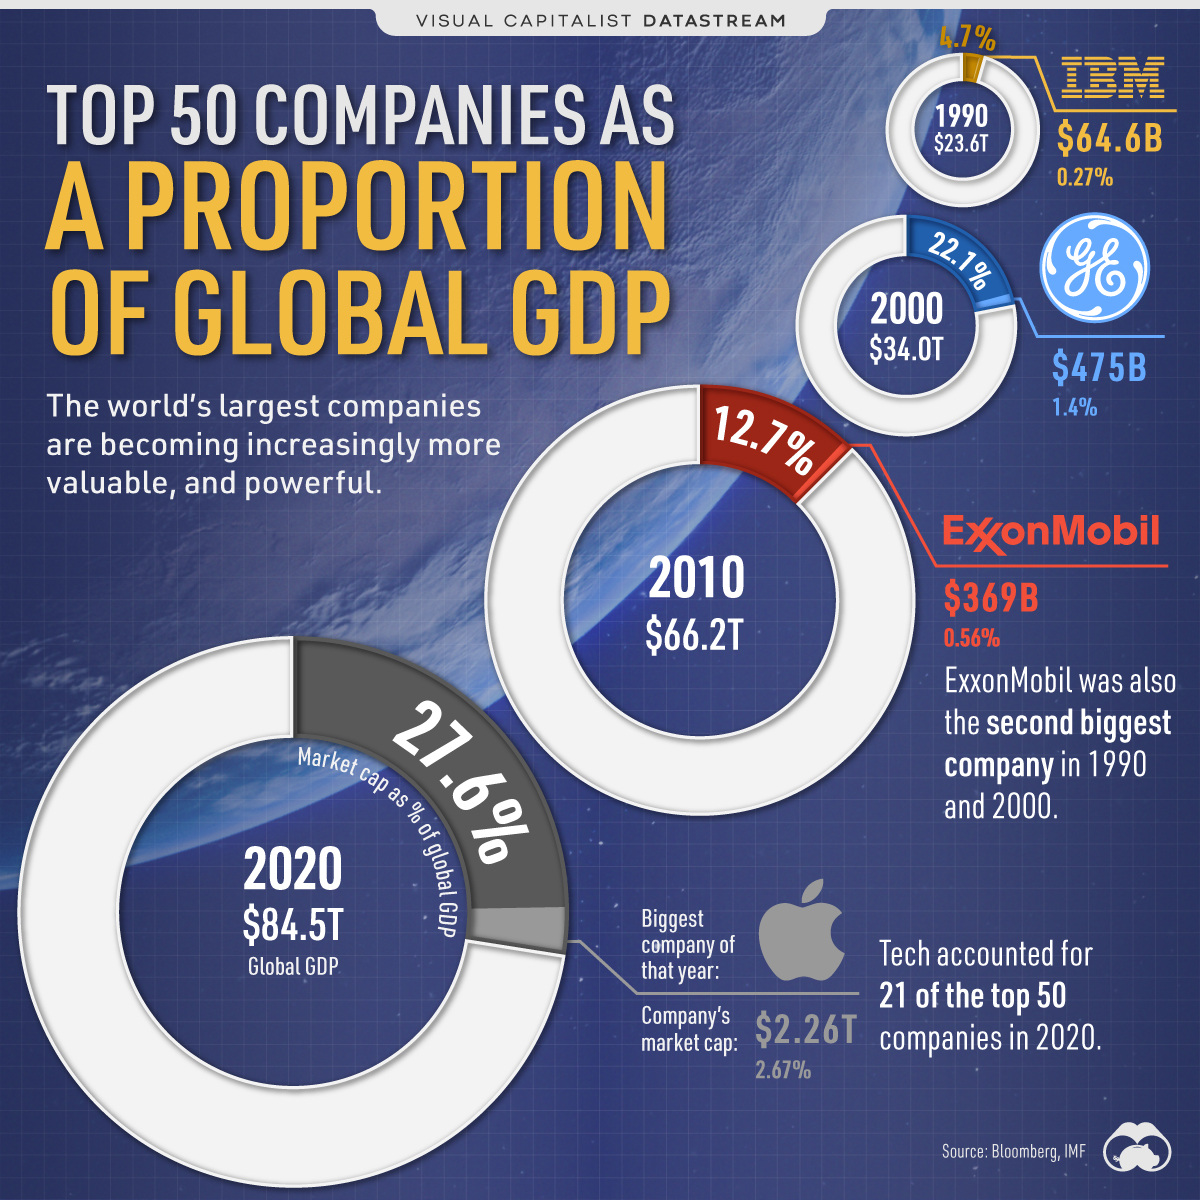 DS--Top-50-Companies-as-Proportion-of-Global-GDP